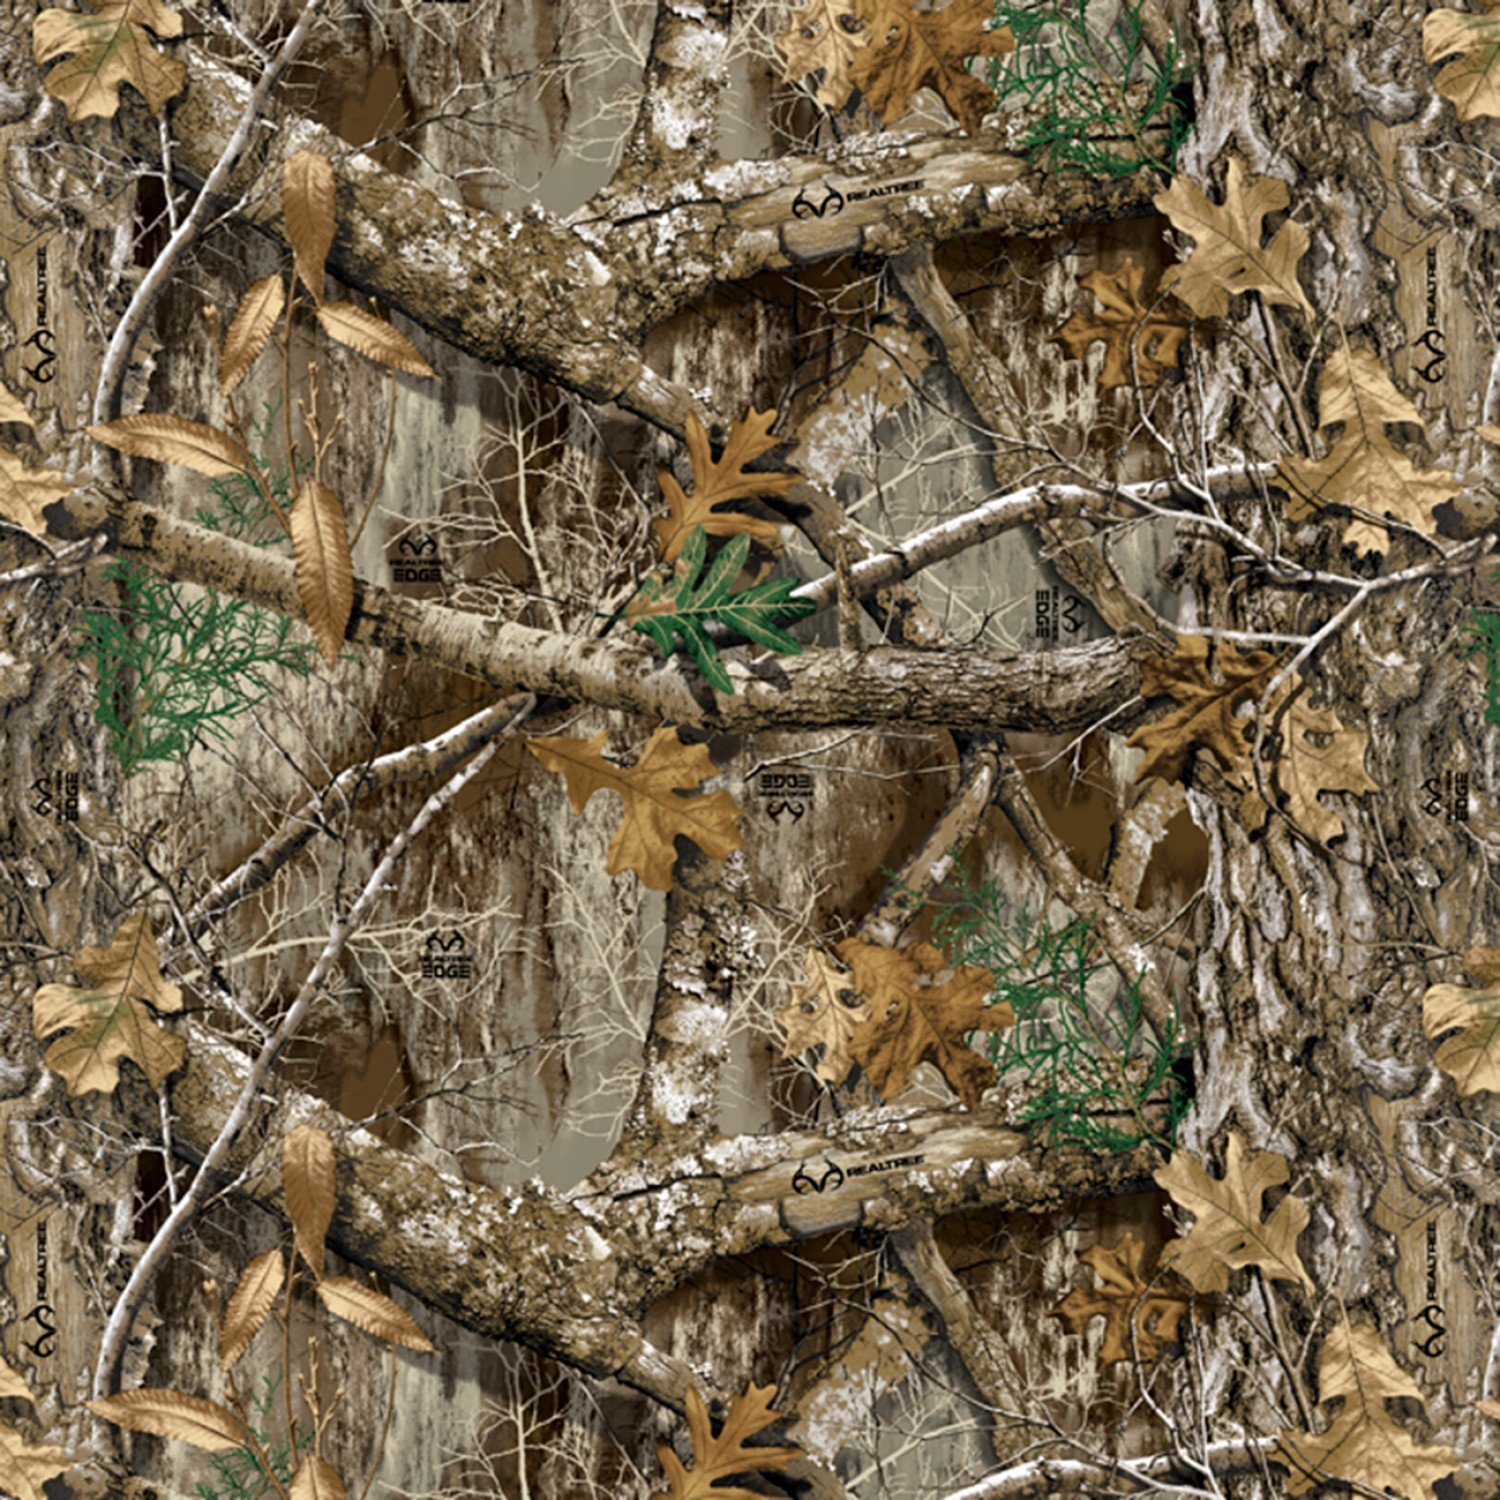 DT-Real Tree Camouflage Fleece RT-0002-MA-1 Multi - Edge 2 Camo Fleece